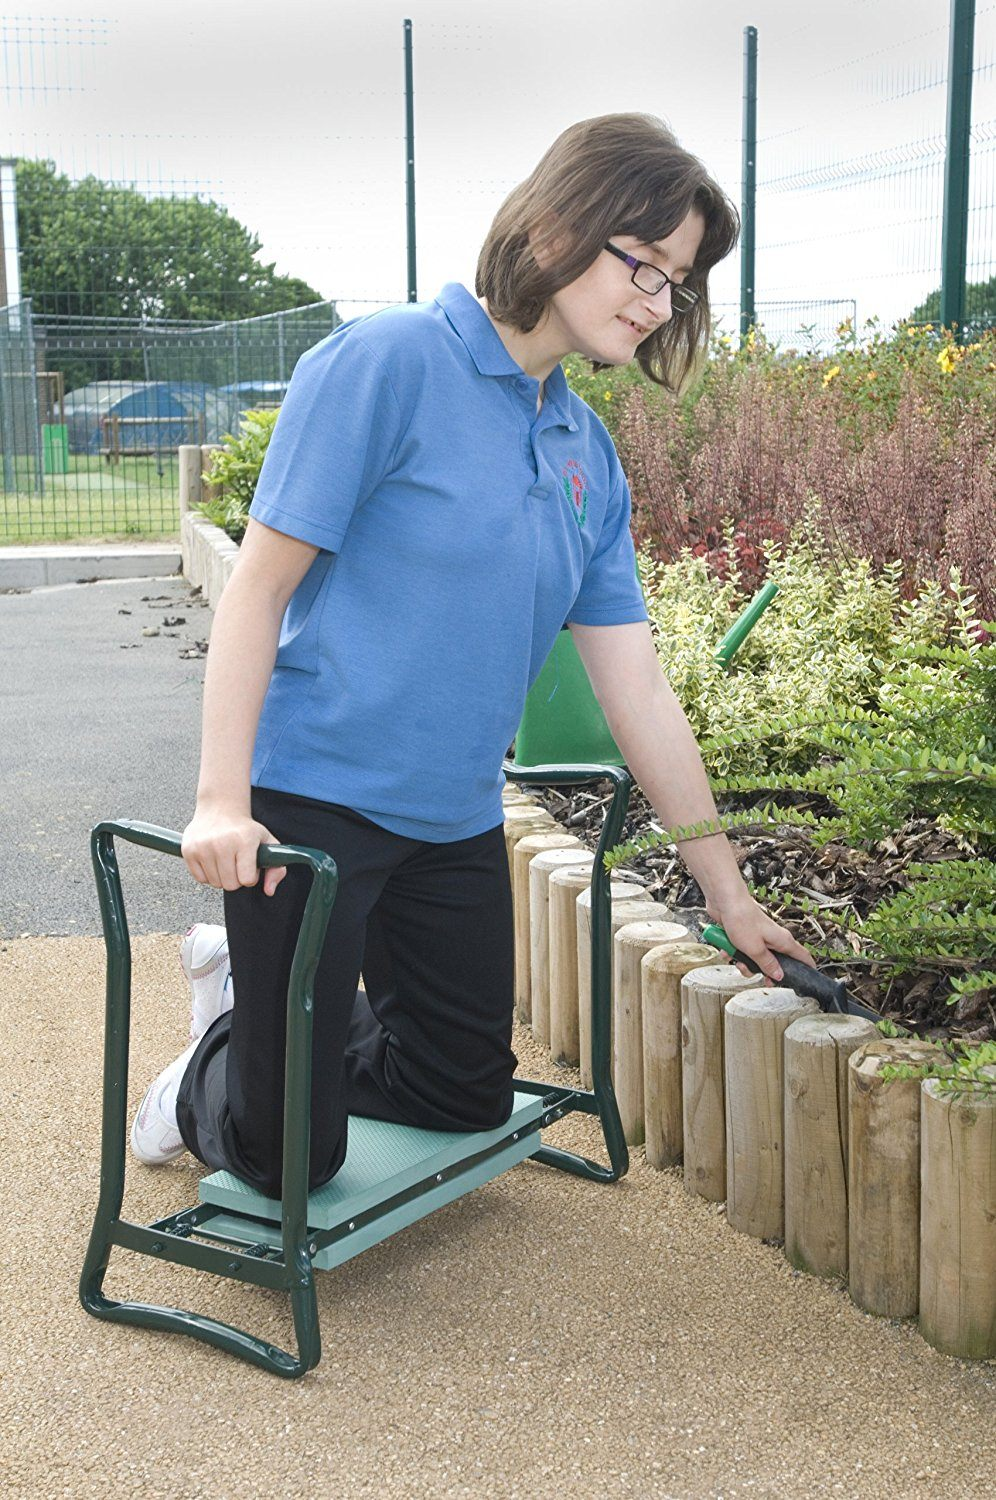 lady using the garden kneeler seat